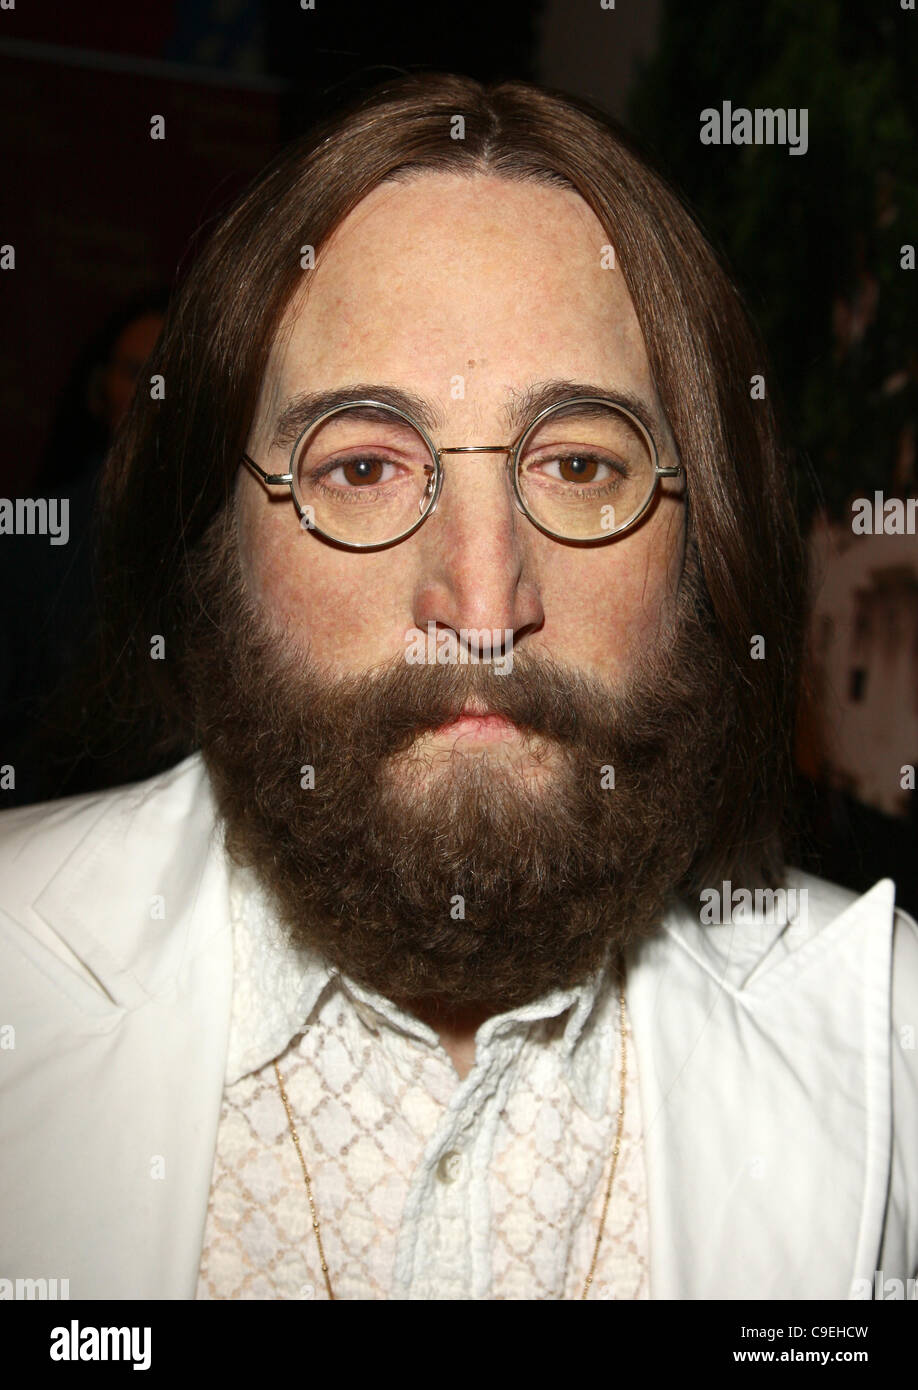 John Lennon High Resolution Stock Photography And Images Alamy